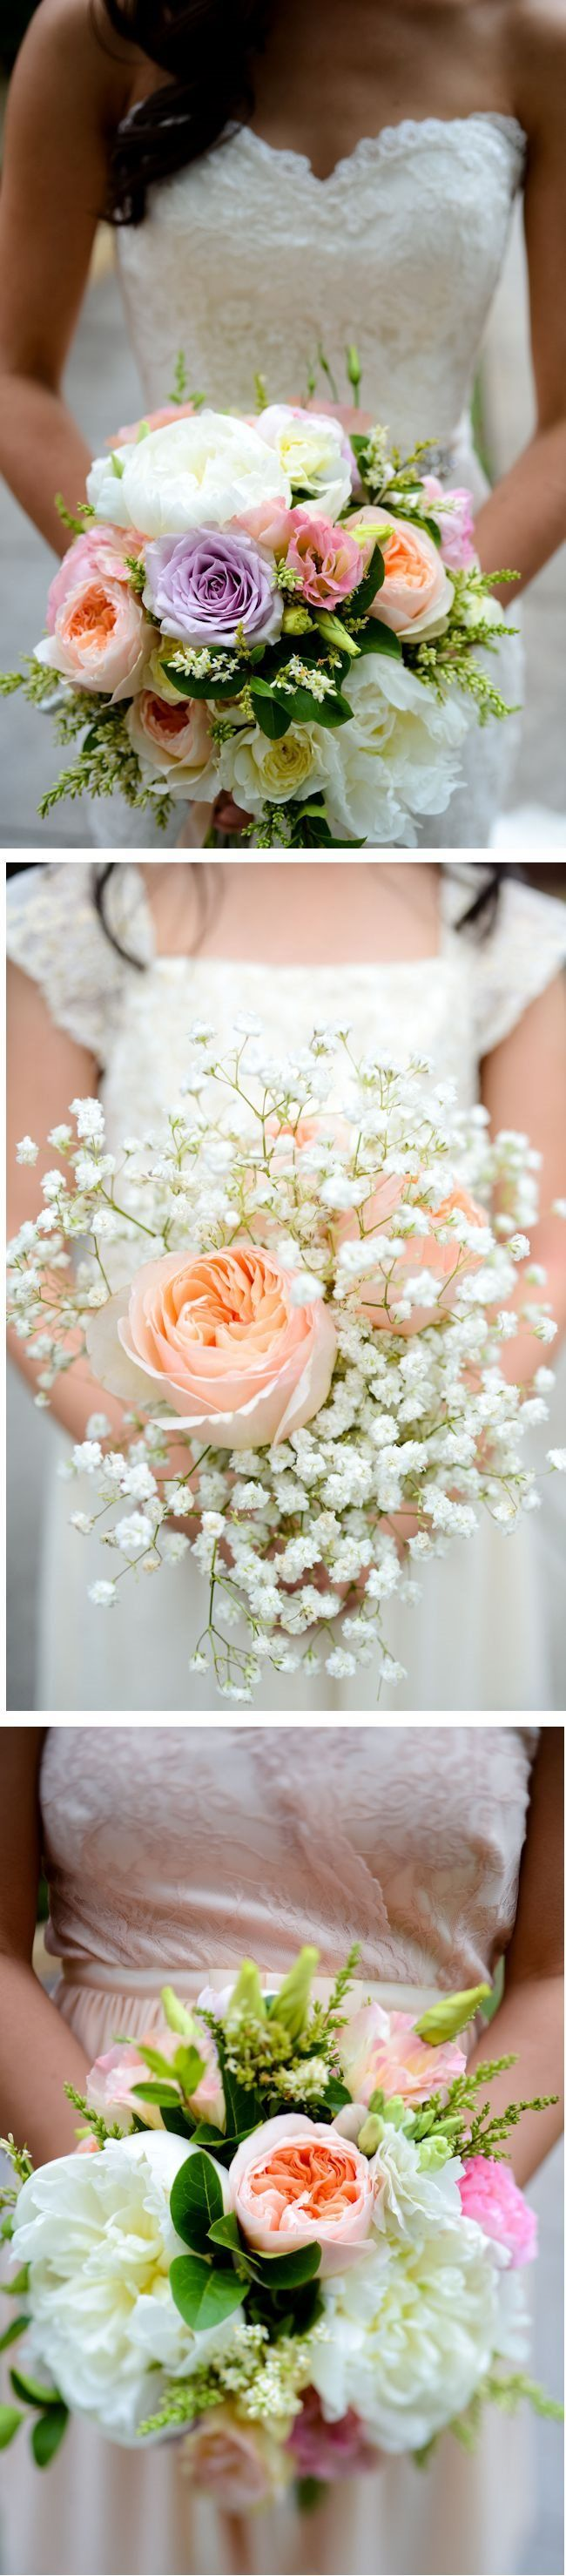 Wedding Flowers from the Benjamin Roberts Bride of the Month, July 2014